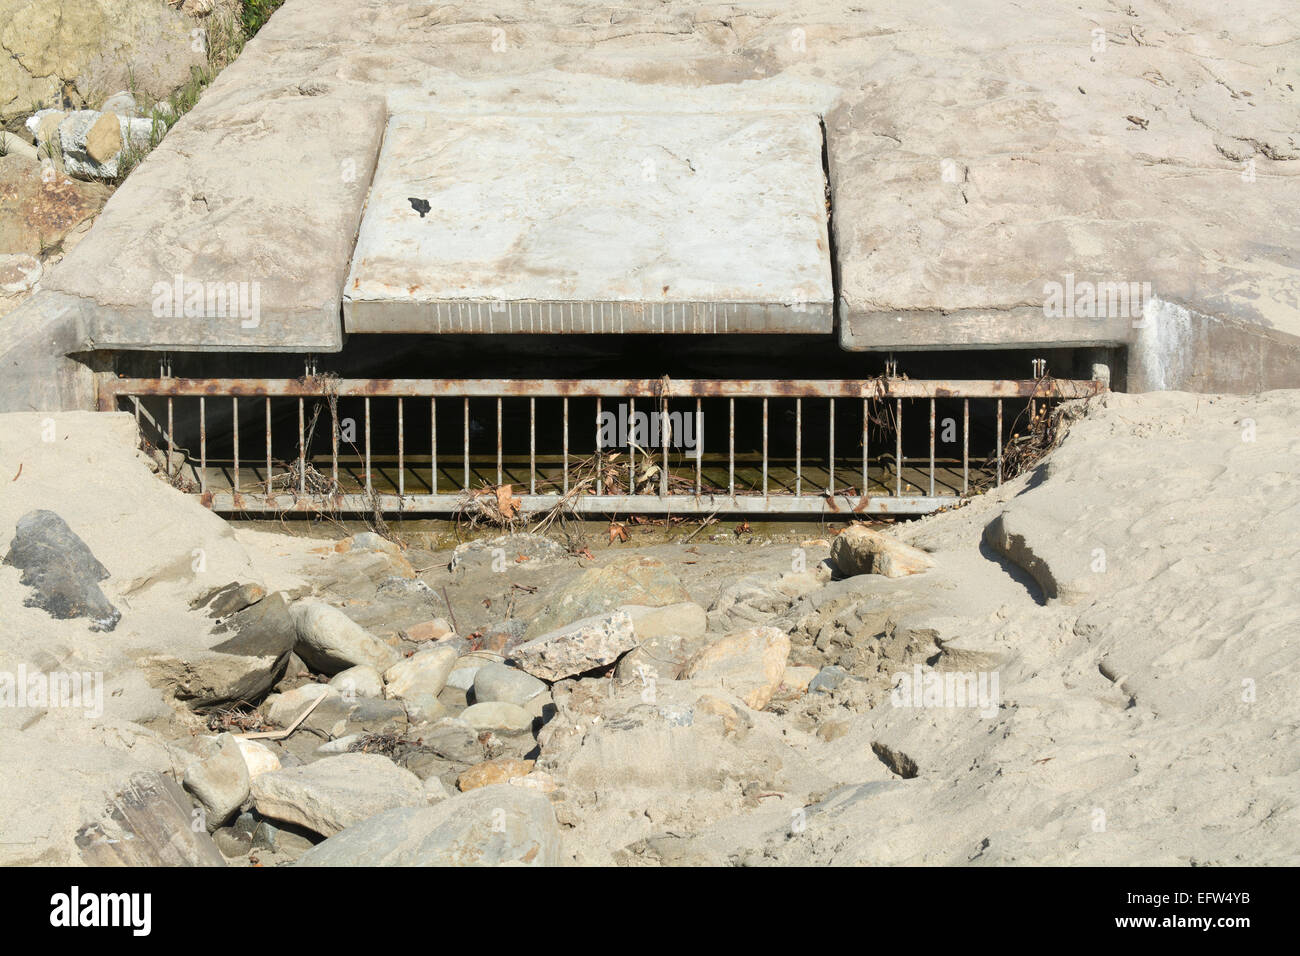 A beach sewer used to drain water runoff from the cliff side during heavy rains to control flooding - Stock Image